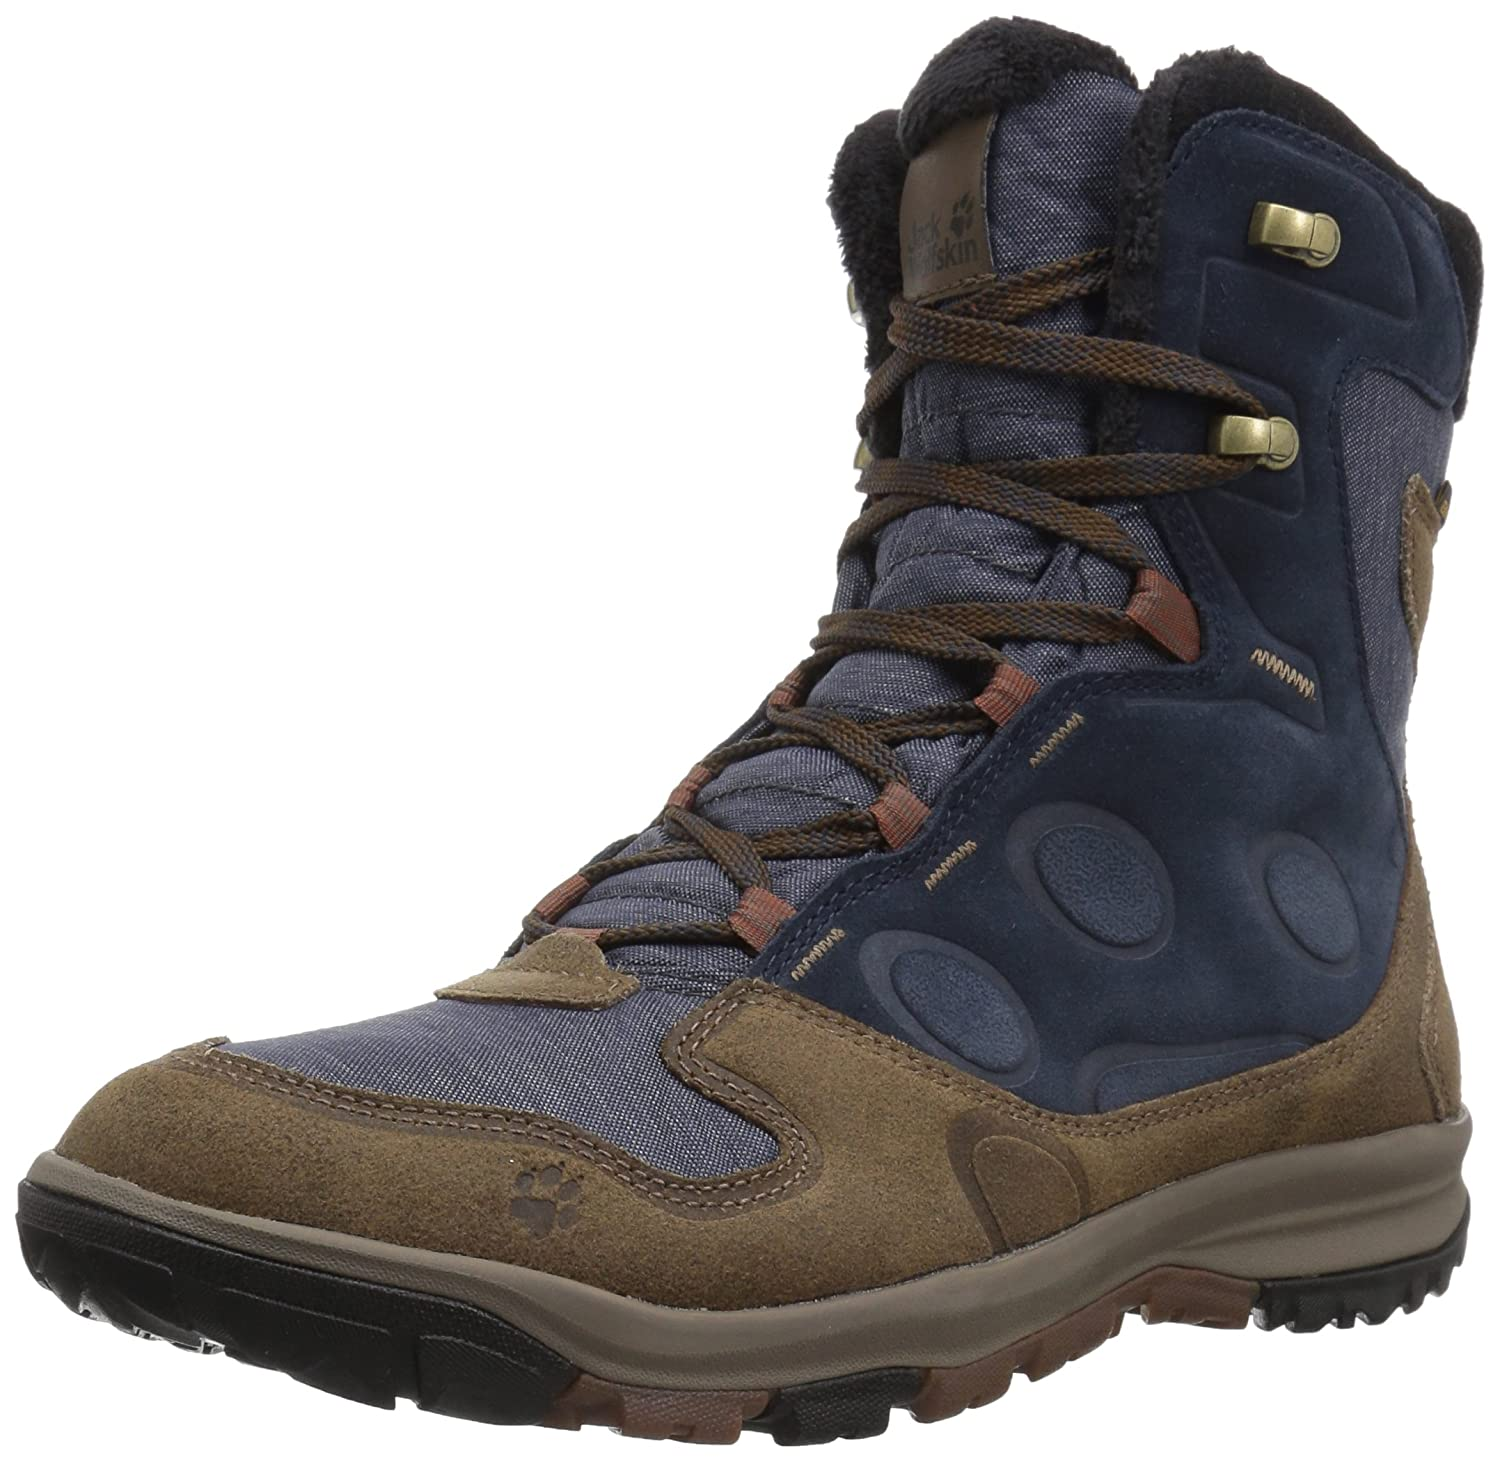 8a19c9c7d36 Jack Wolfskin Men's Vancouver Texapore High M Fashion Boot: Amazon.co.uk:  Shoes & Bags